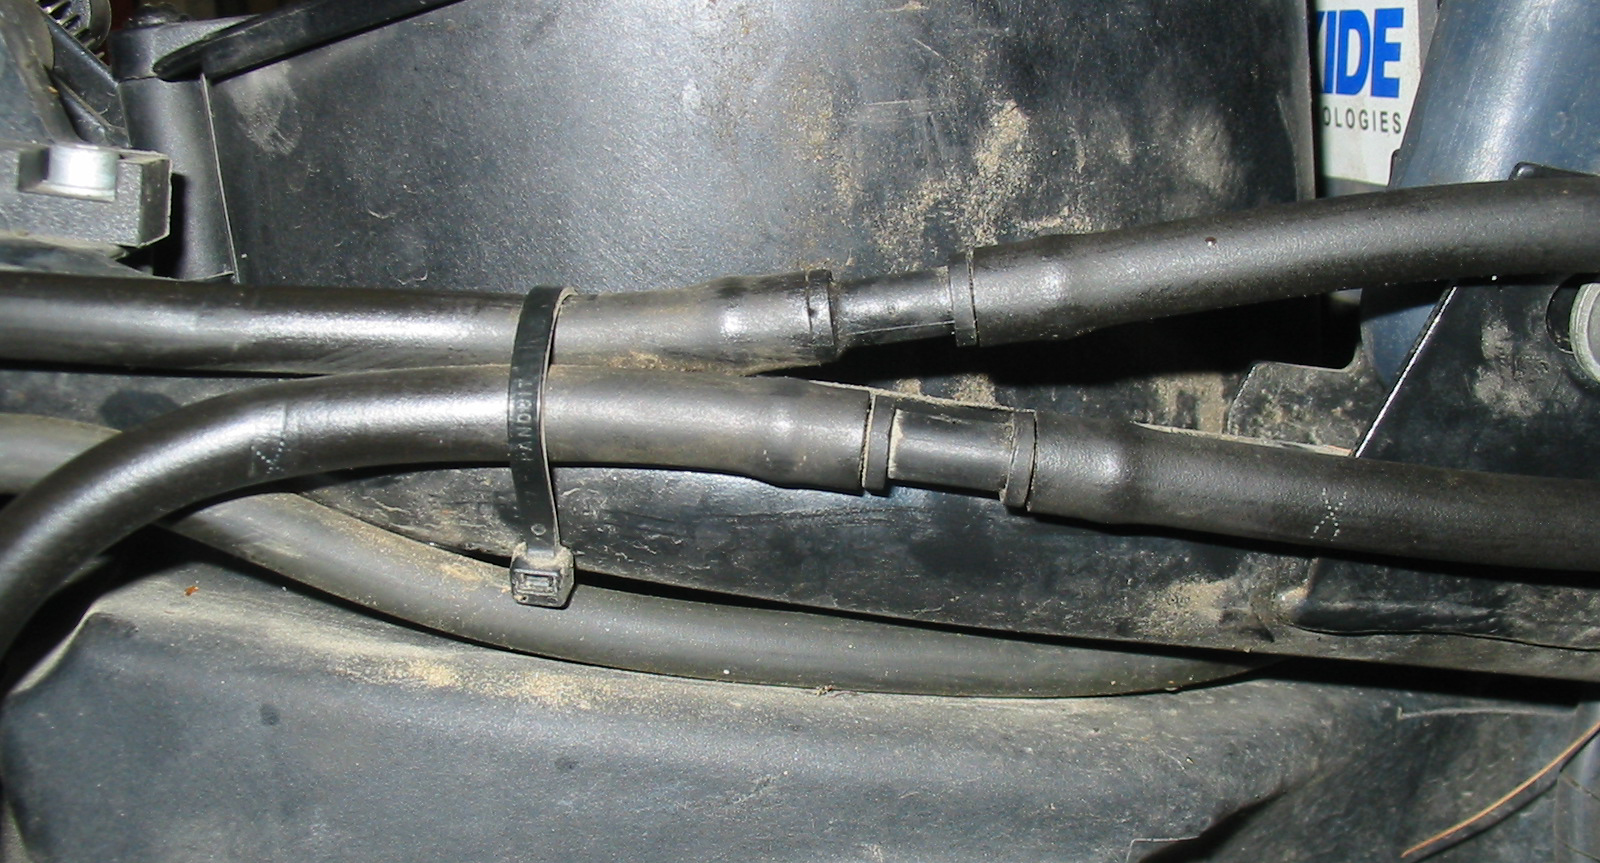 Fuel Tank Plumbing R1150rt Engine Diagram Vent And Drain Hoses At The Right Frame Rail Notice X Marks On Lower Hose